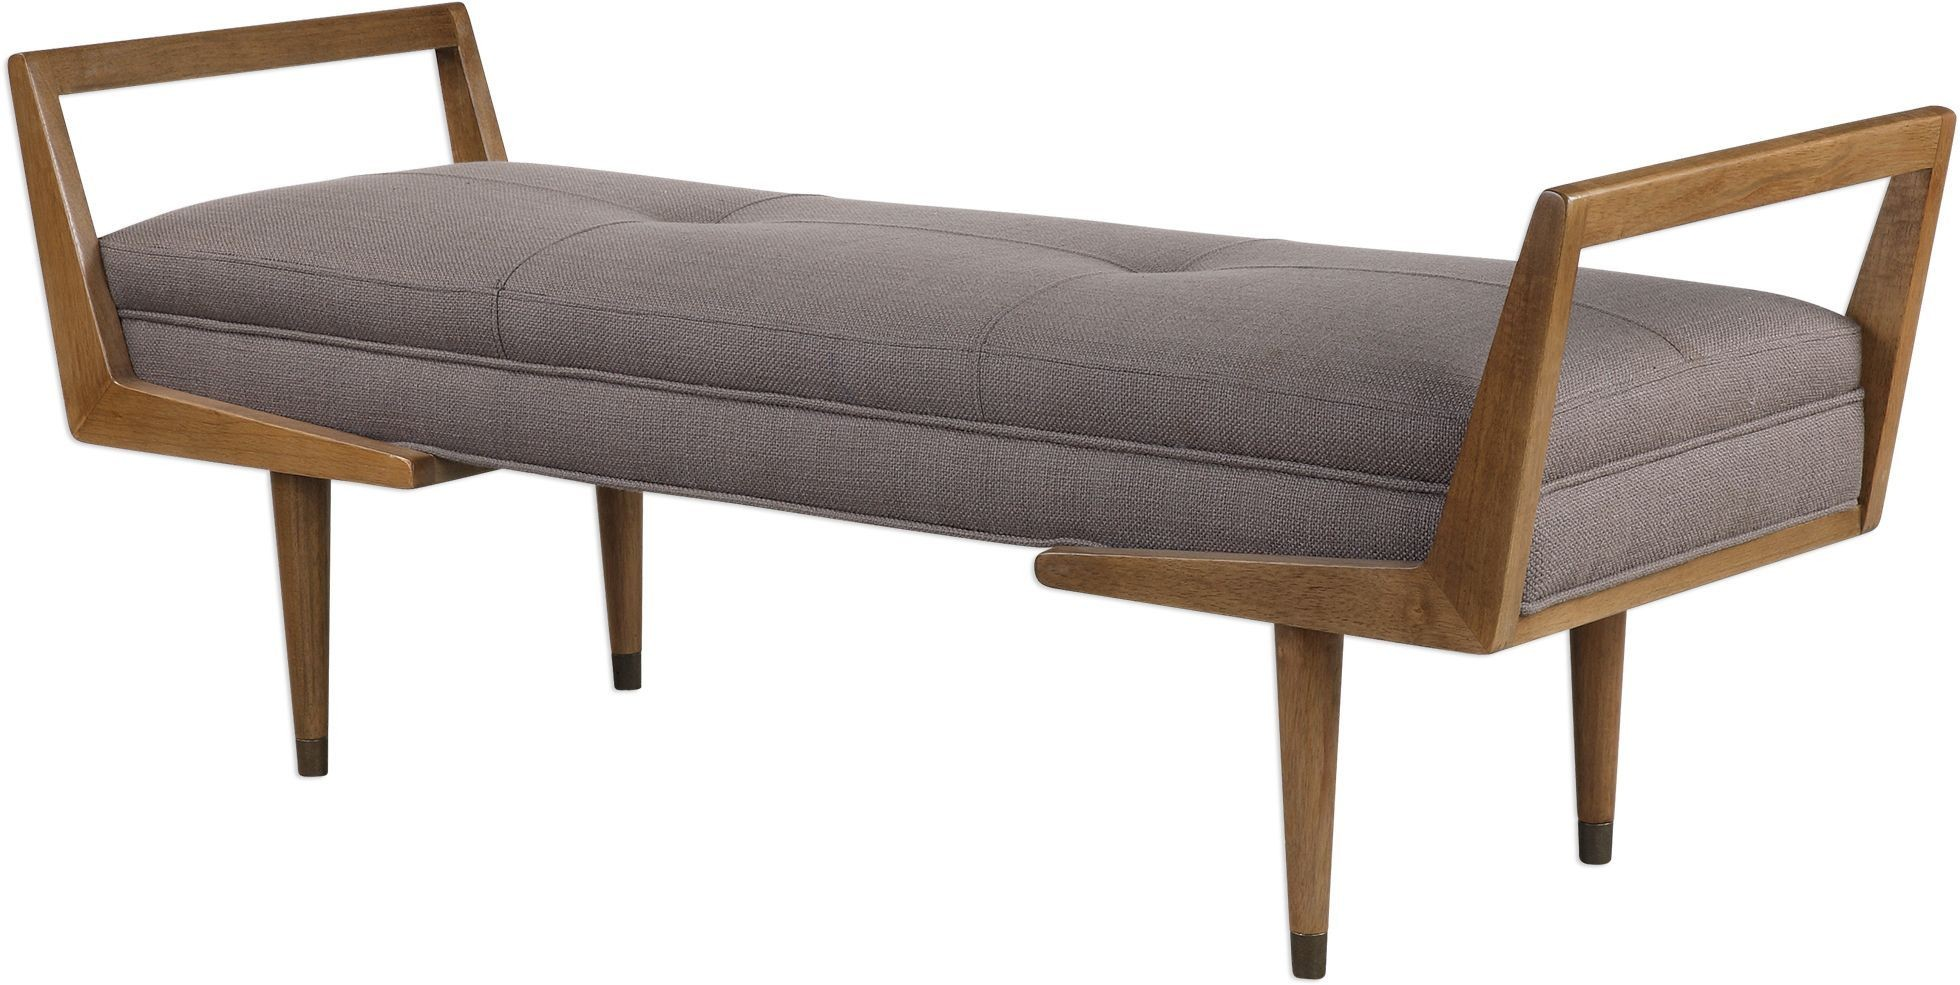 Waylon Mid Century Modern Bench From Uttermost Coleman Furniture